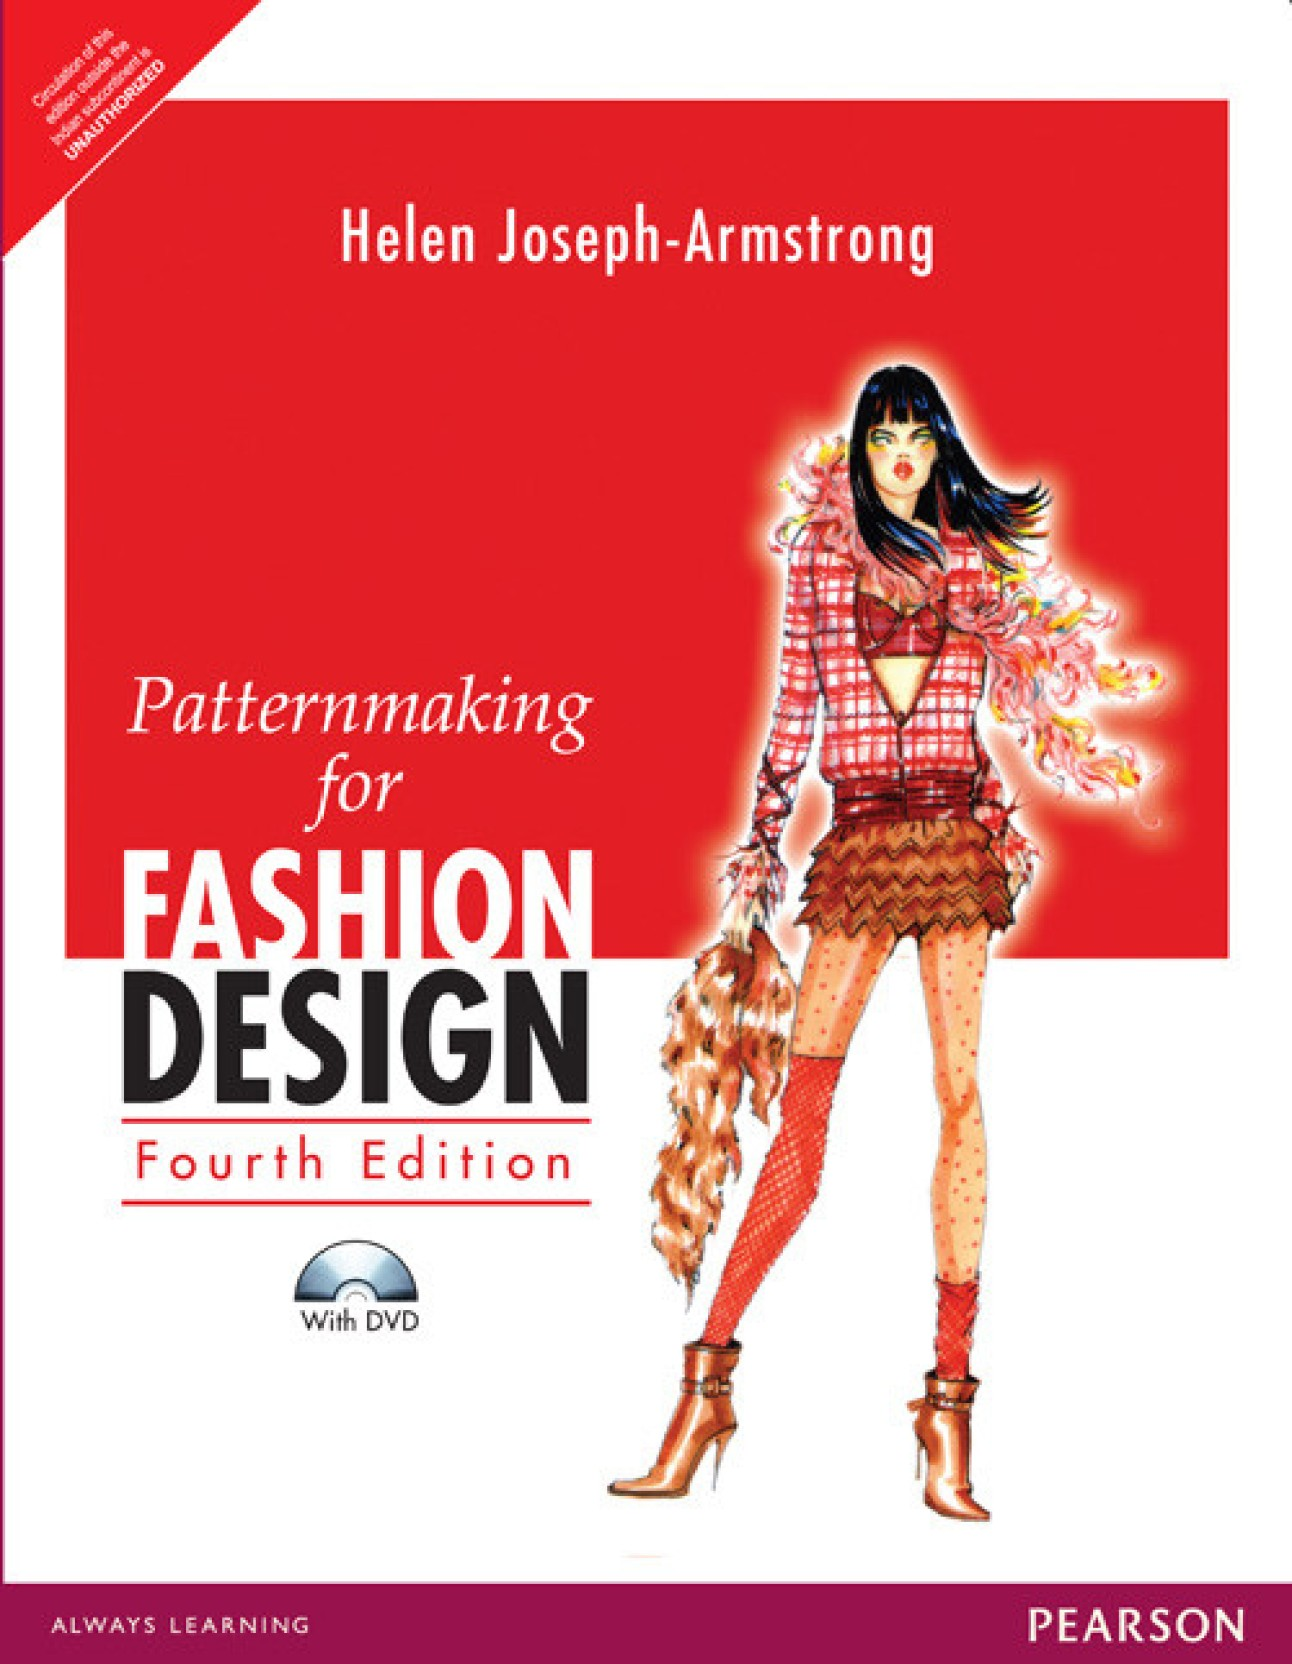 Patternmaking for fashion design 5th edition ebook 46